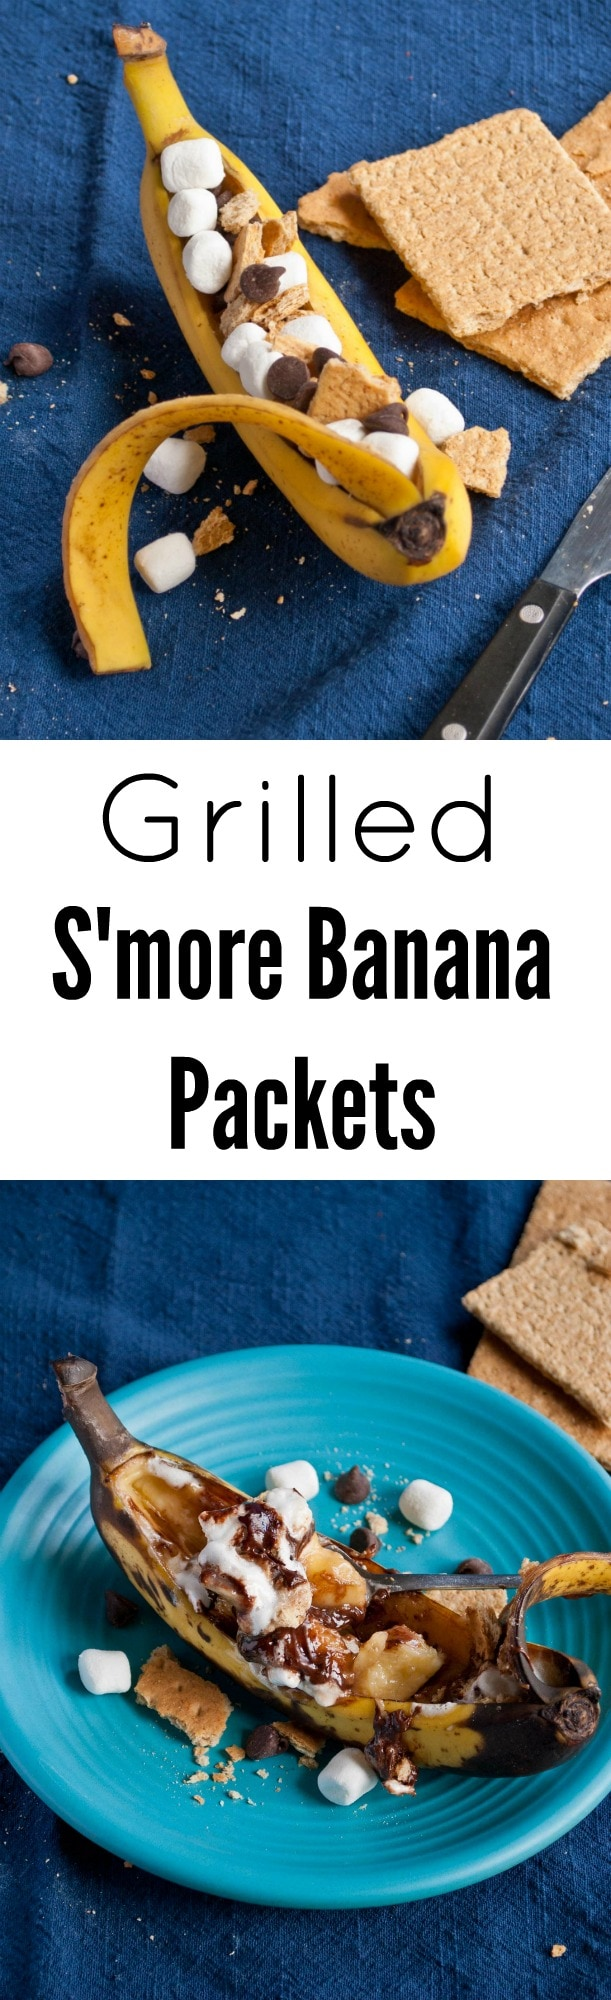 These Grilled S'more Banana Packets are such a fun and easy dessert for summer! Kids and adults both love them!